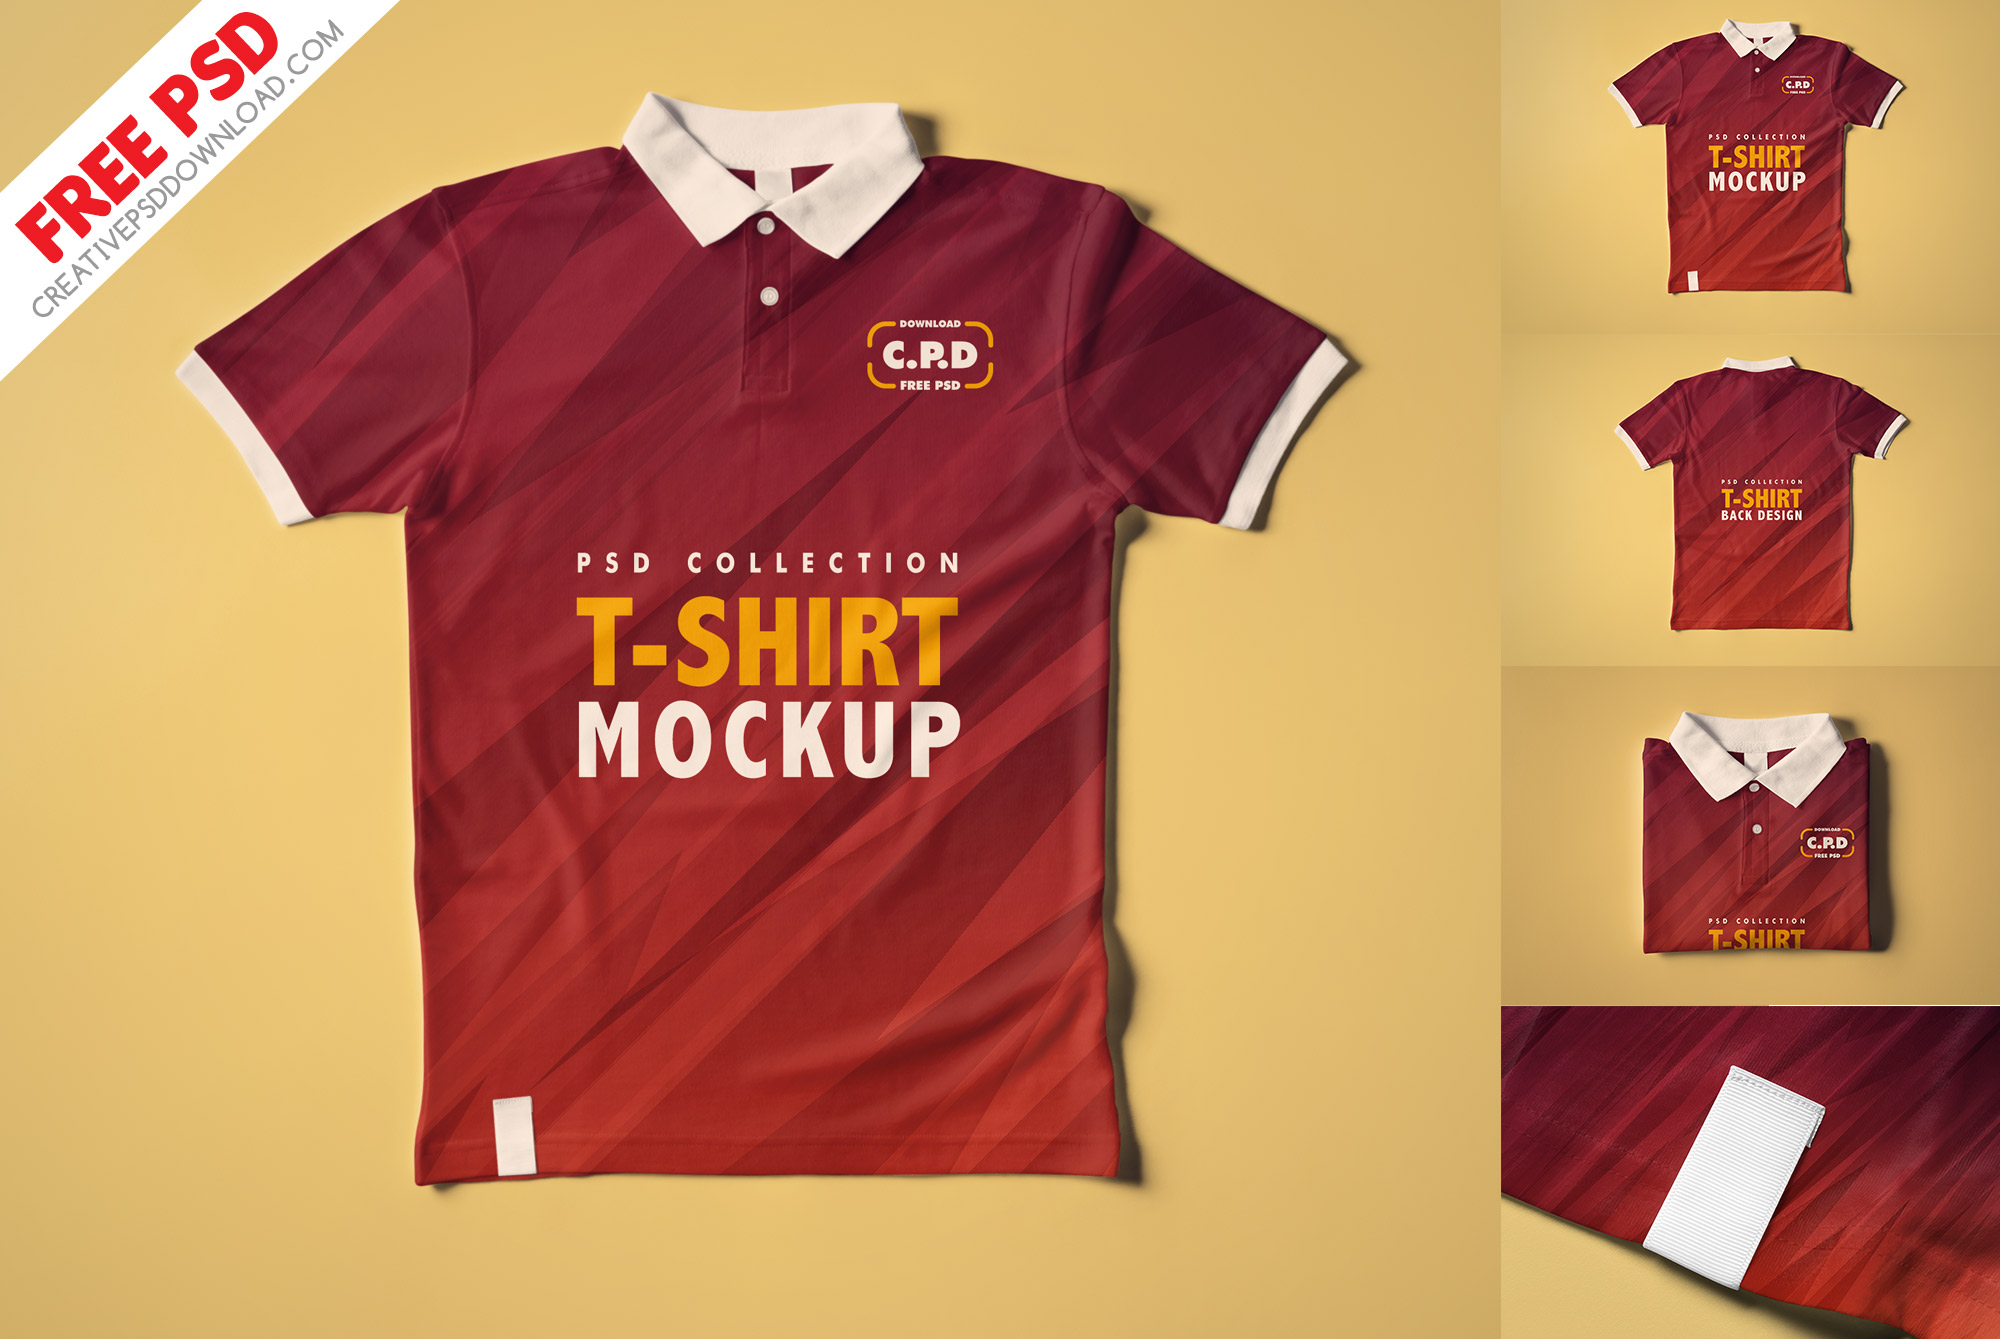 Collar T-Shirt Mockup Collection [3 Psd Mockups],front view, back view